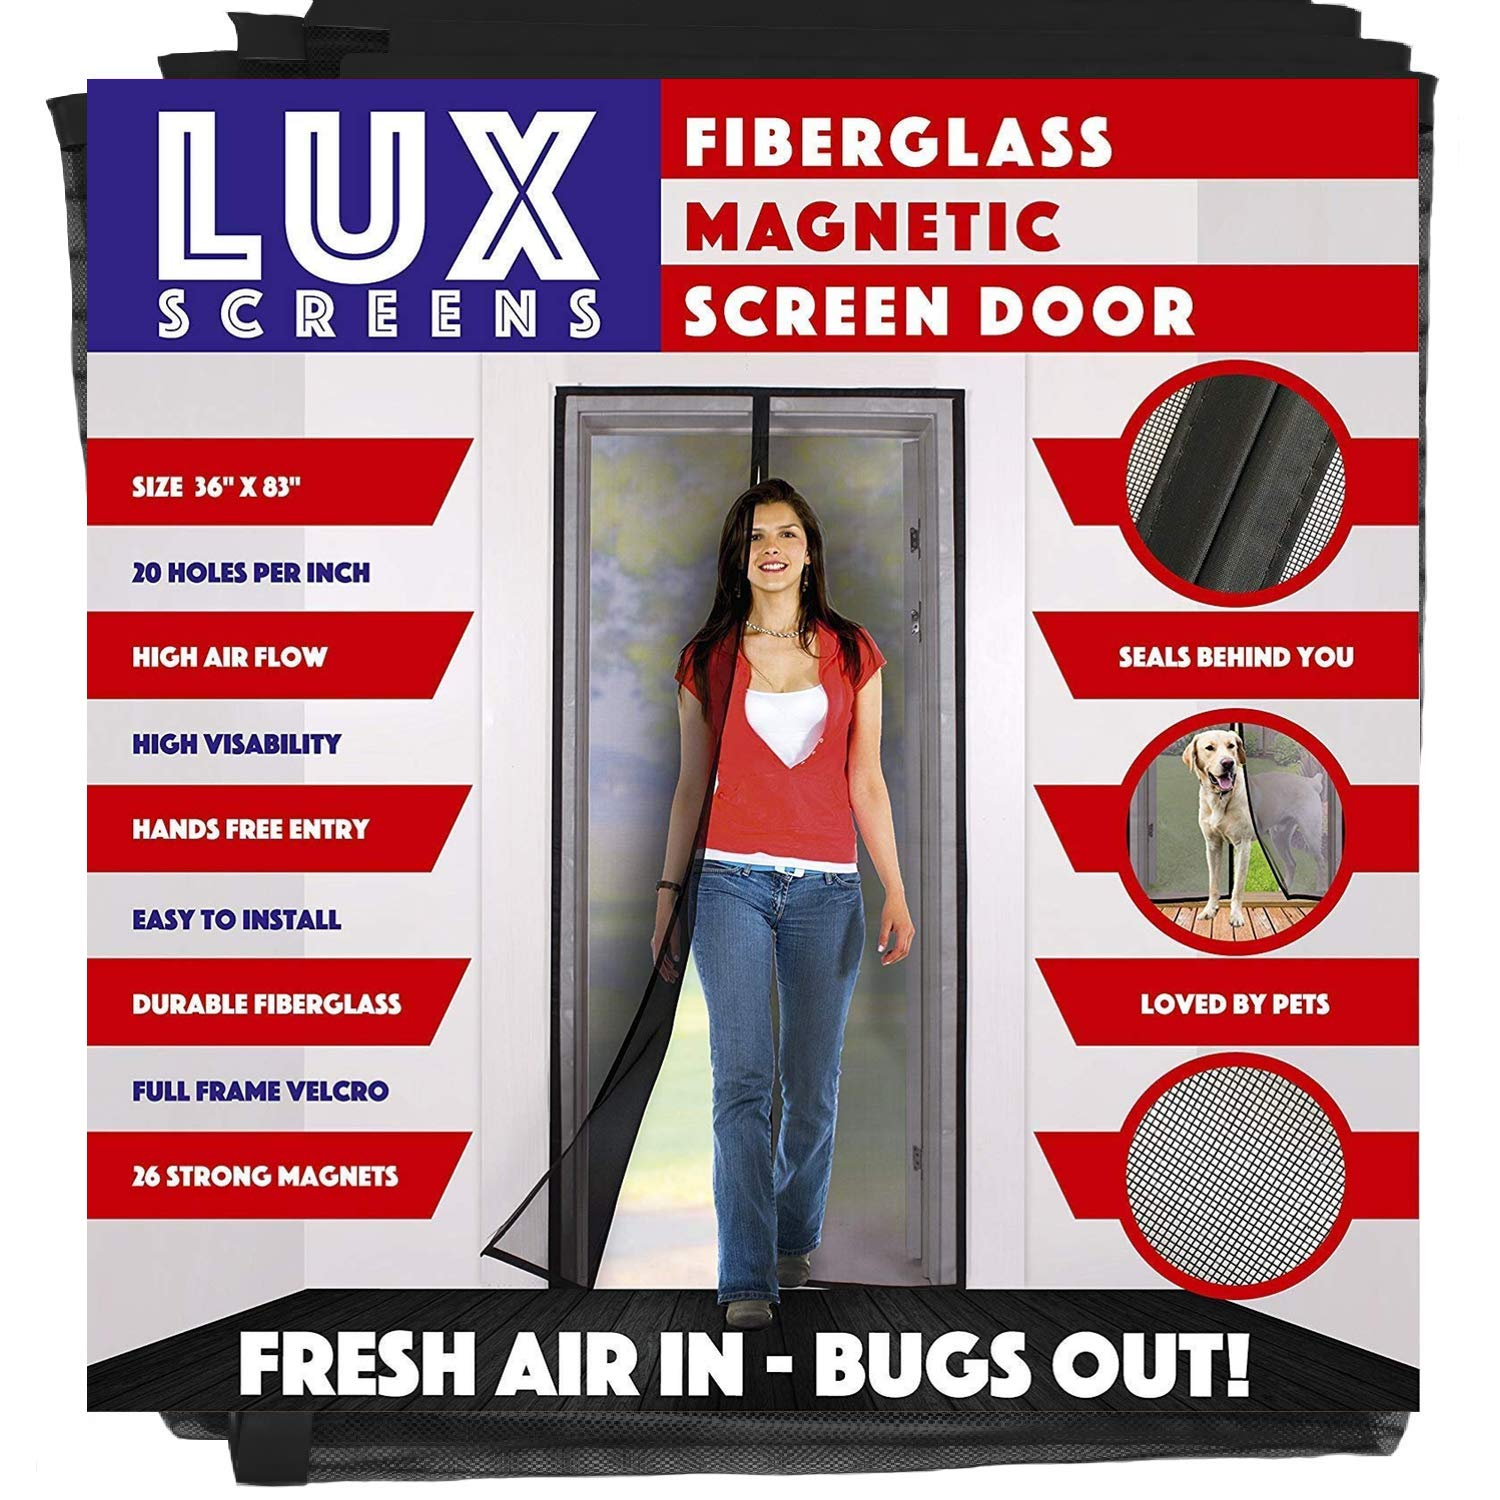 Magnetic Screen Door New 2017 Patent Pending Design Full Frame Velcro & Fiberglass Mesh Not Polyester This Instant Retractable Bug Screen Opens and Closes like Magic it's the Last Screen You'll Need by Lux Screens